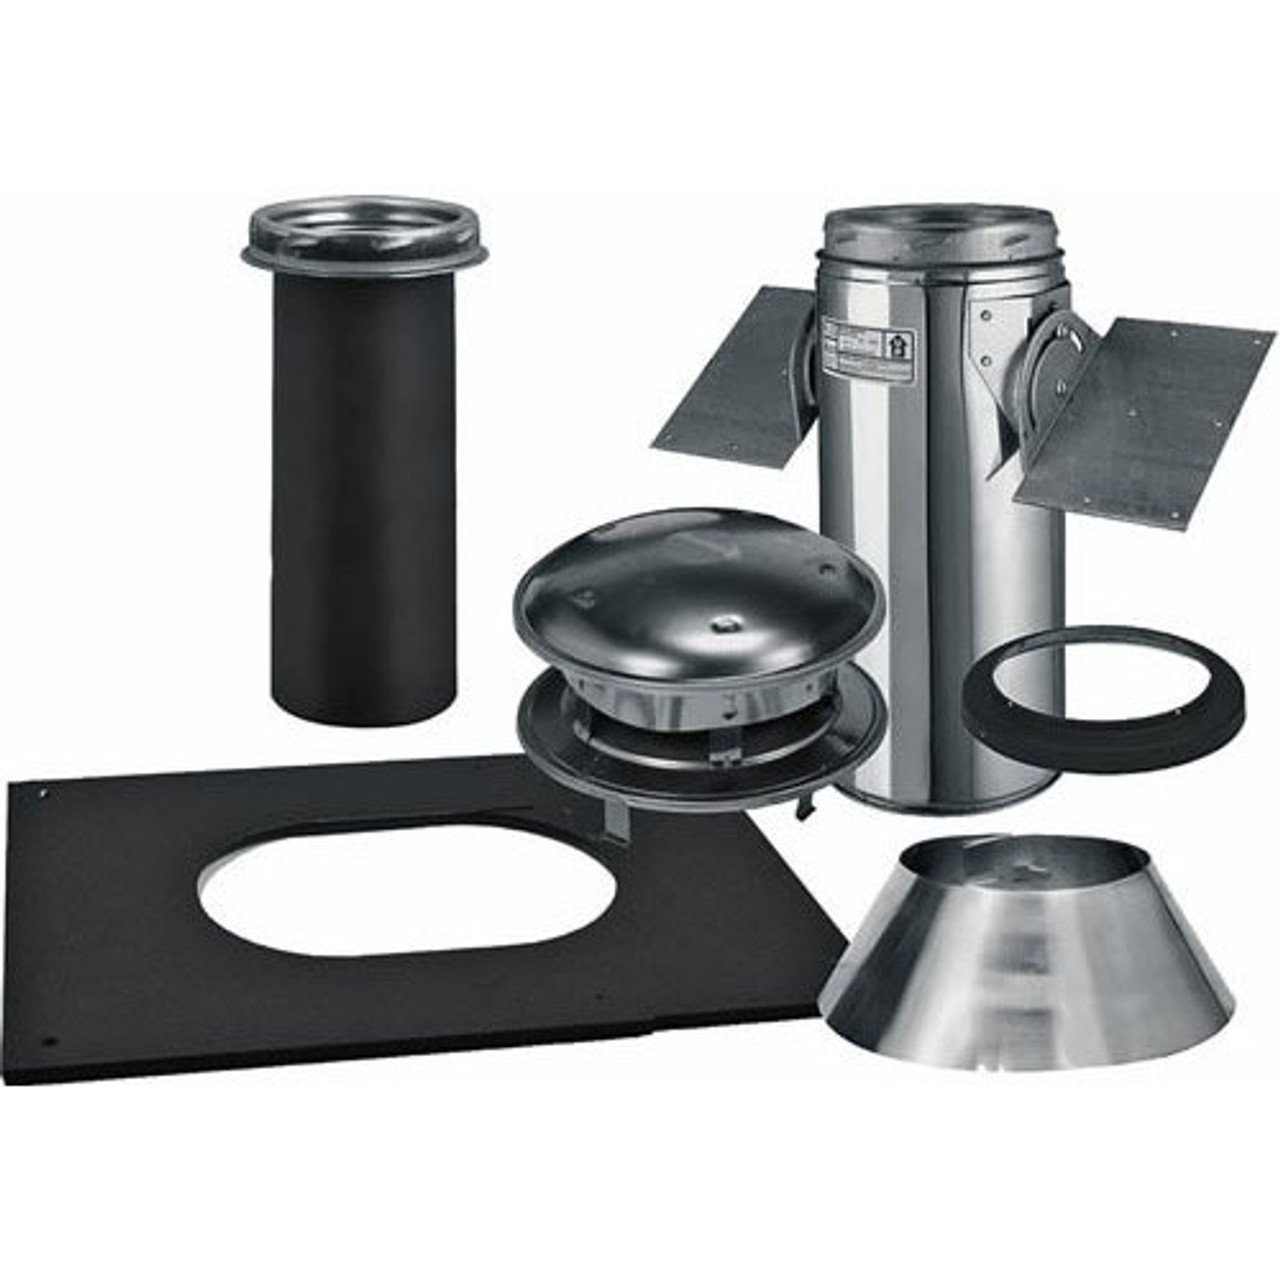 Selkirk Metalbestos 6 Quot Pitched Ceiling Support Kit